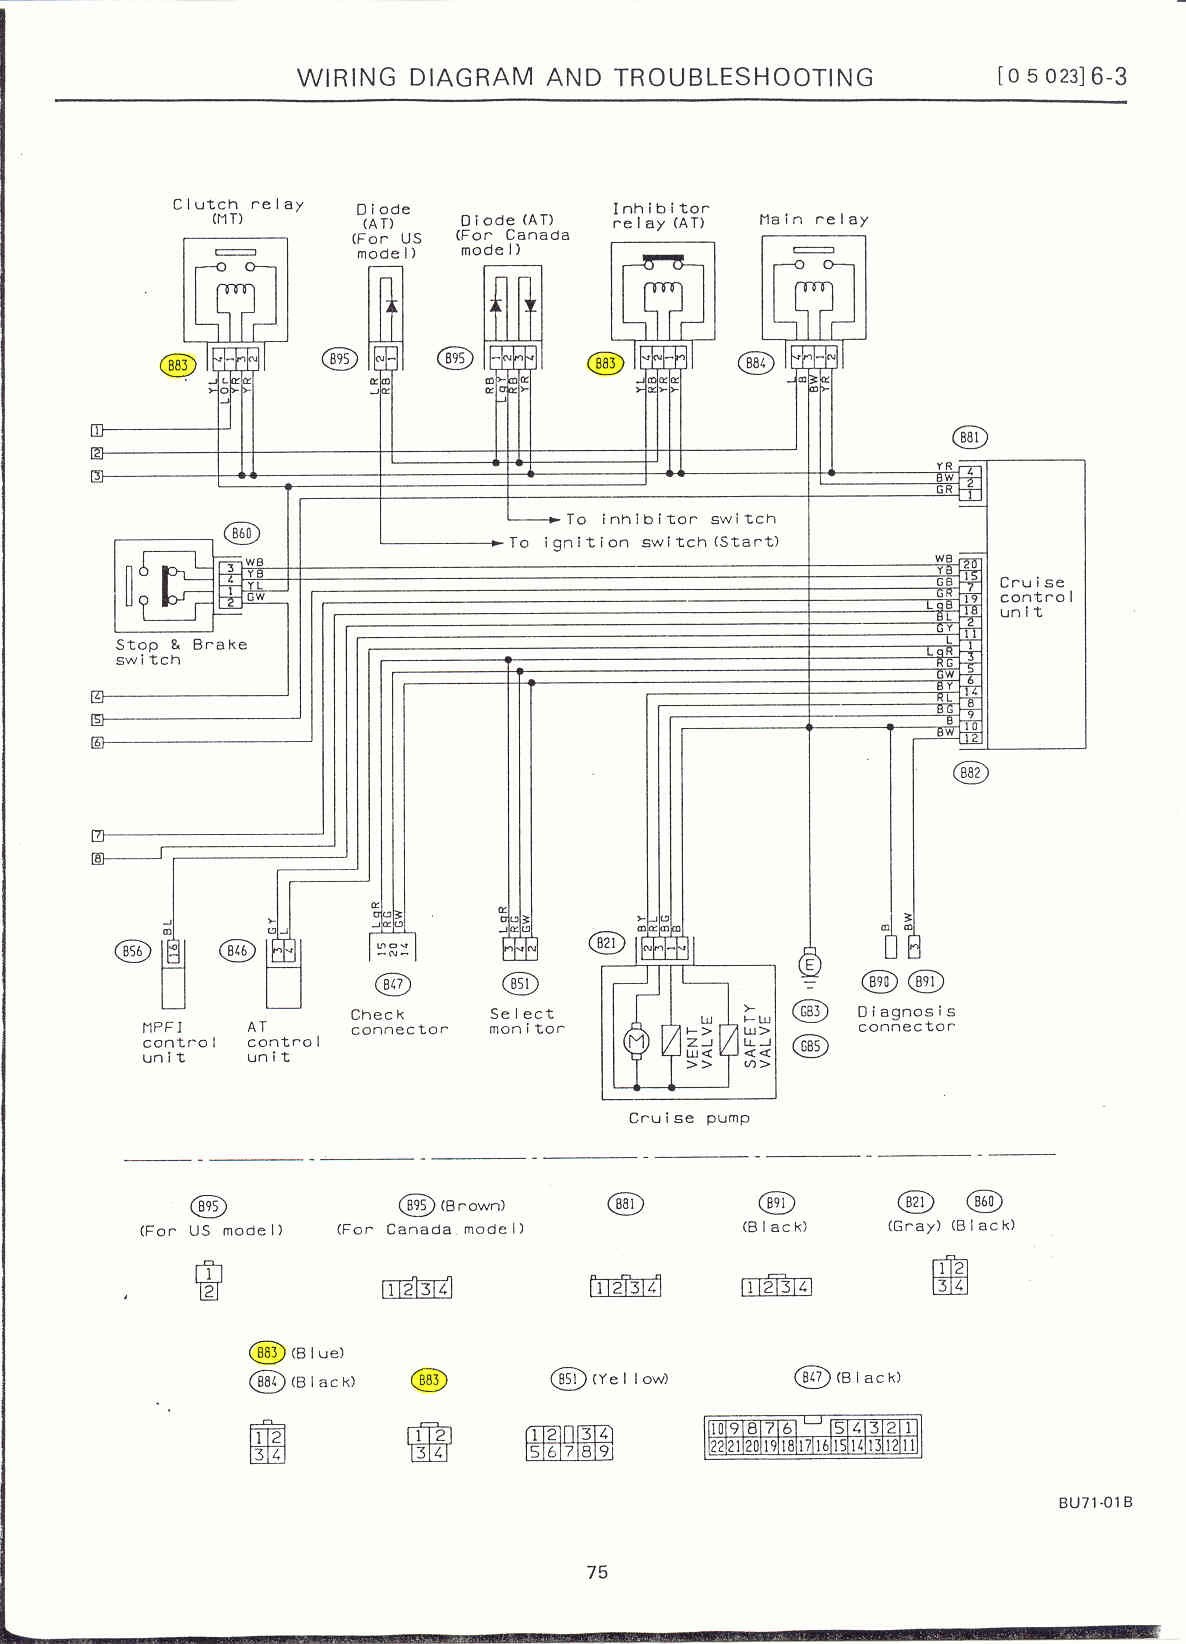 93 impreza wiring diagram free vehicle wiring diagrams u2022 rh addone tw Subaru Impreza Sedan Subaru Impreza Sedan